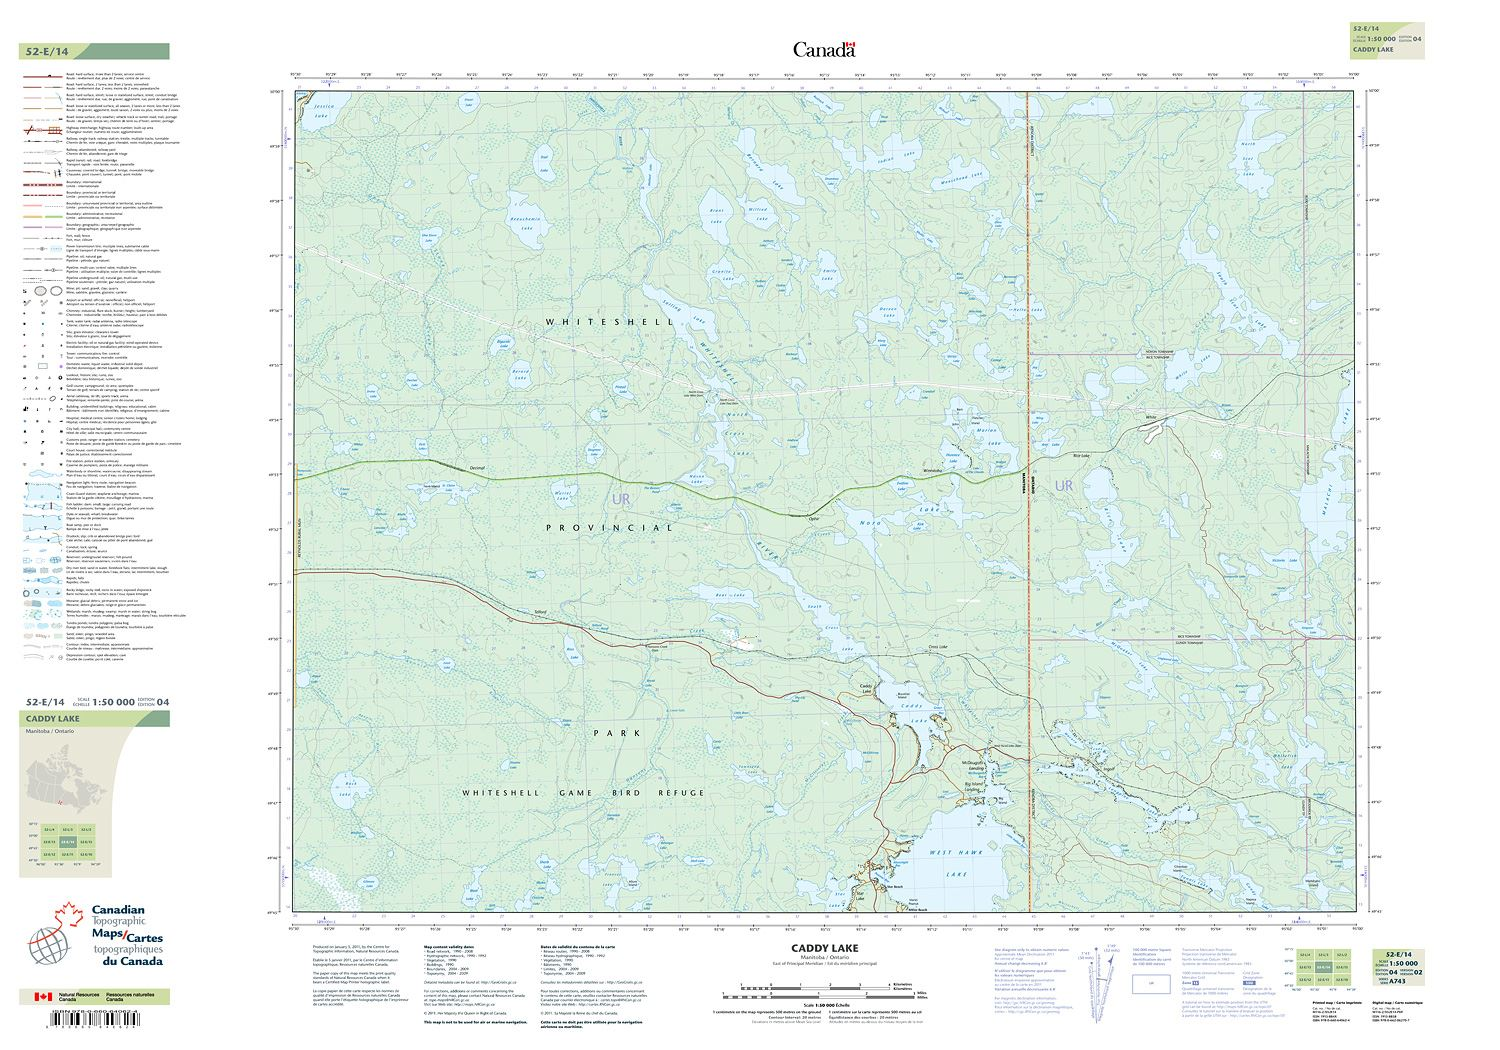 Topographic Map Game.052e14 Caddy Lake Topographic Map